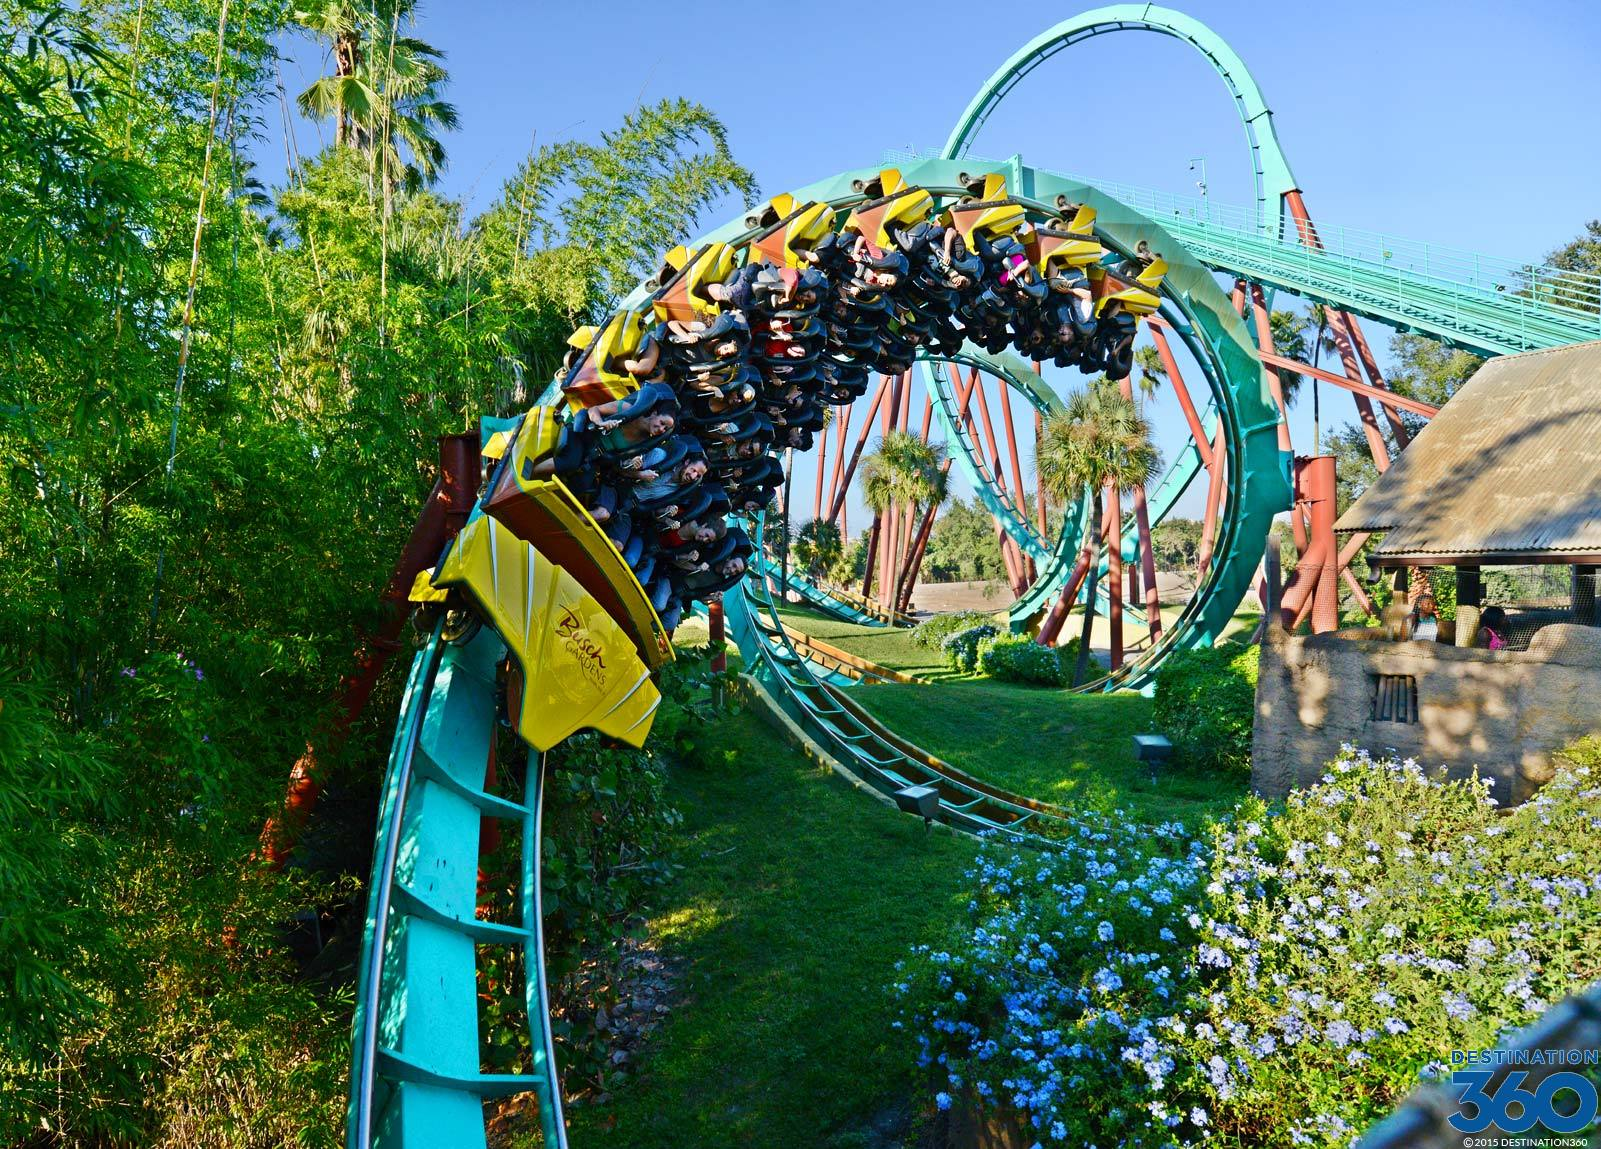 High Quality Busch Gardens Tampa Pictures Gallery